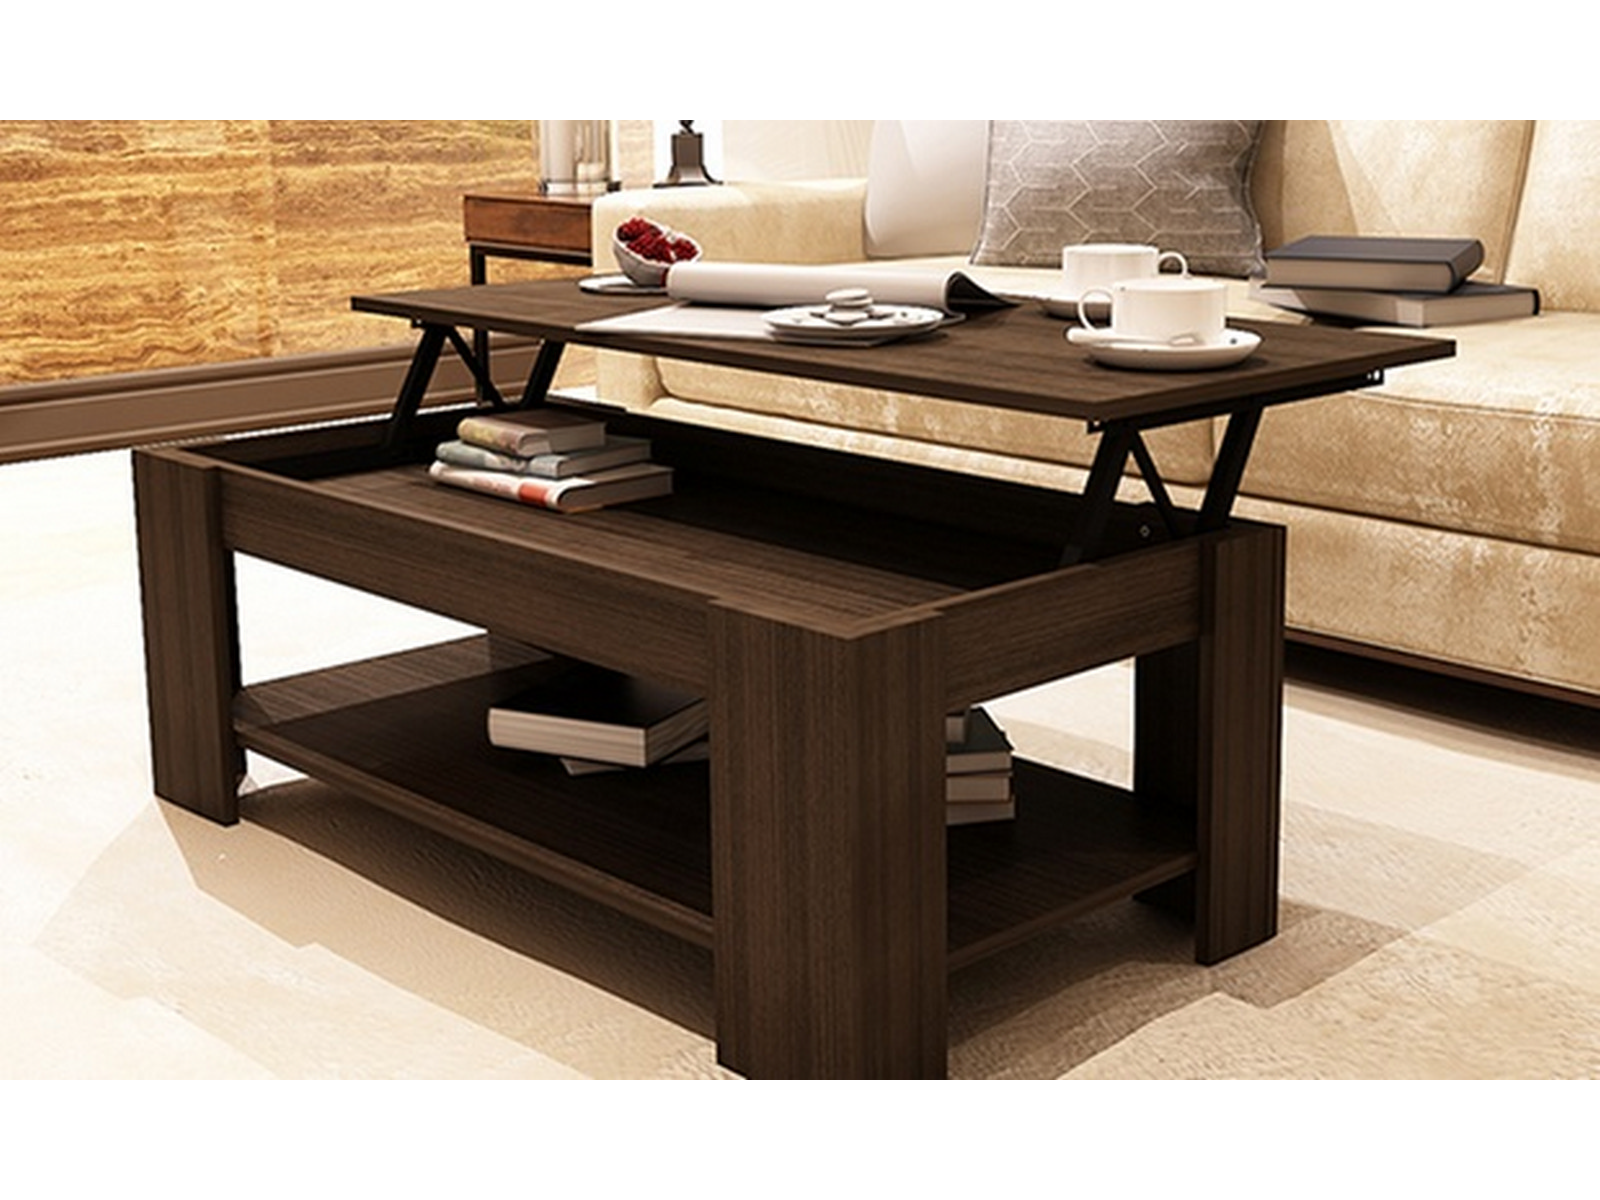 Couchtisch Mit Essfunktion New Caspian Espresso Lift Top Coffee Table With Storage